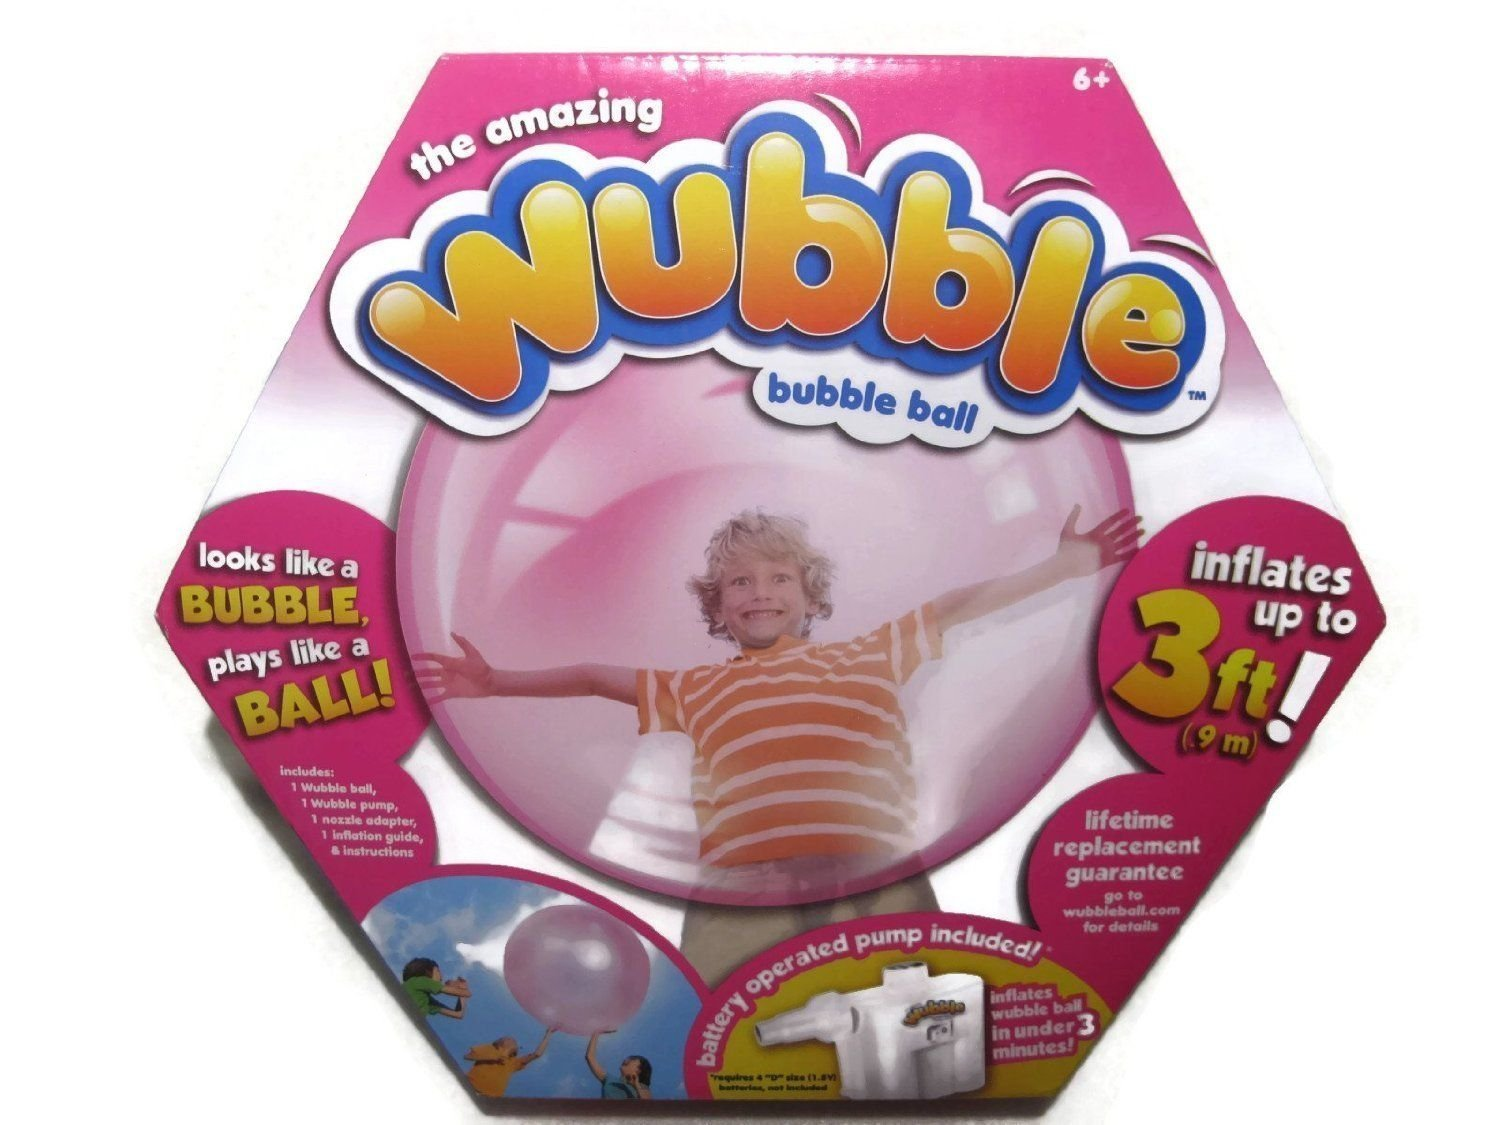 Wubble The Amazing Bubble Ball - Looks Like a Bubble, Plays Like a Ball! Pink